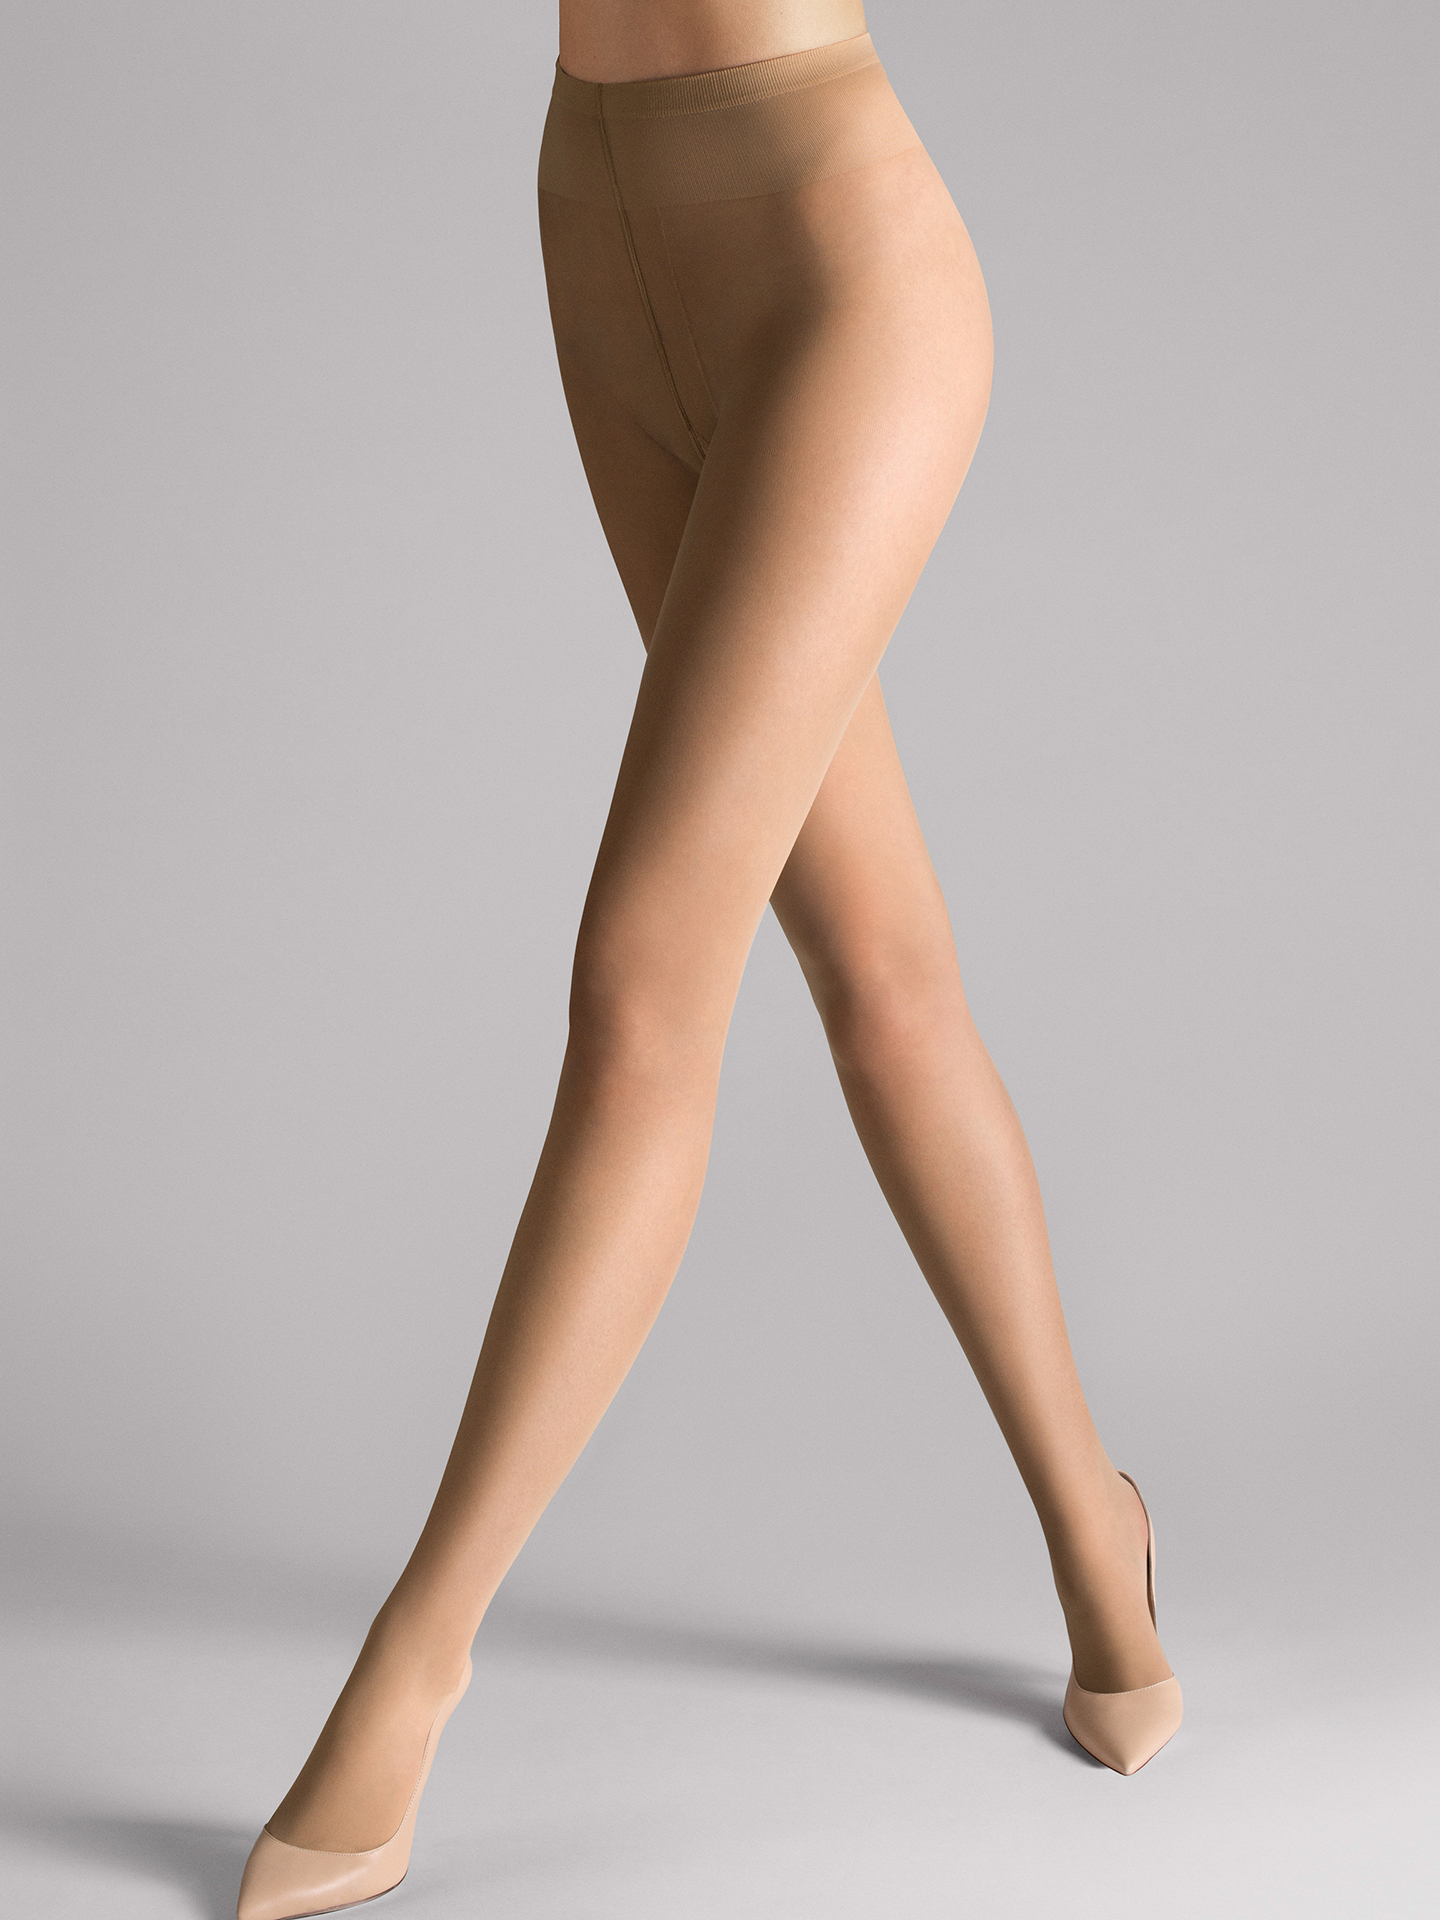 Wolford Apparel & Accessories > Clothing > Collant Individual 20 - 4467 - M